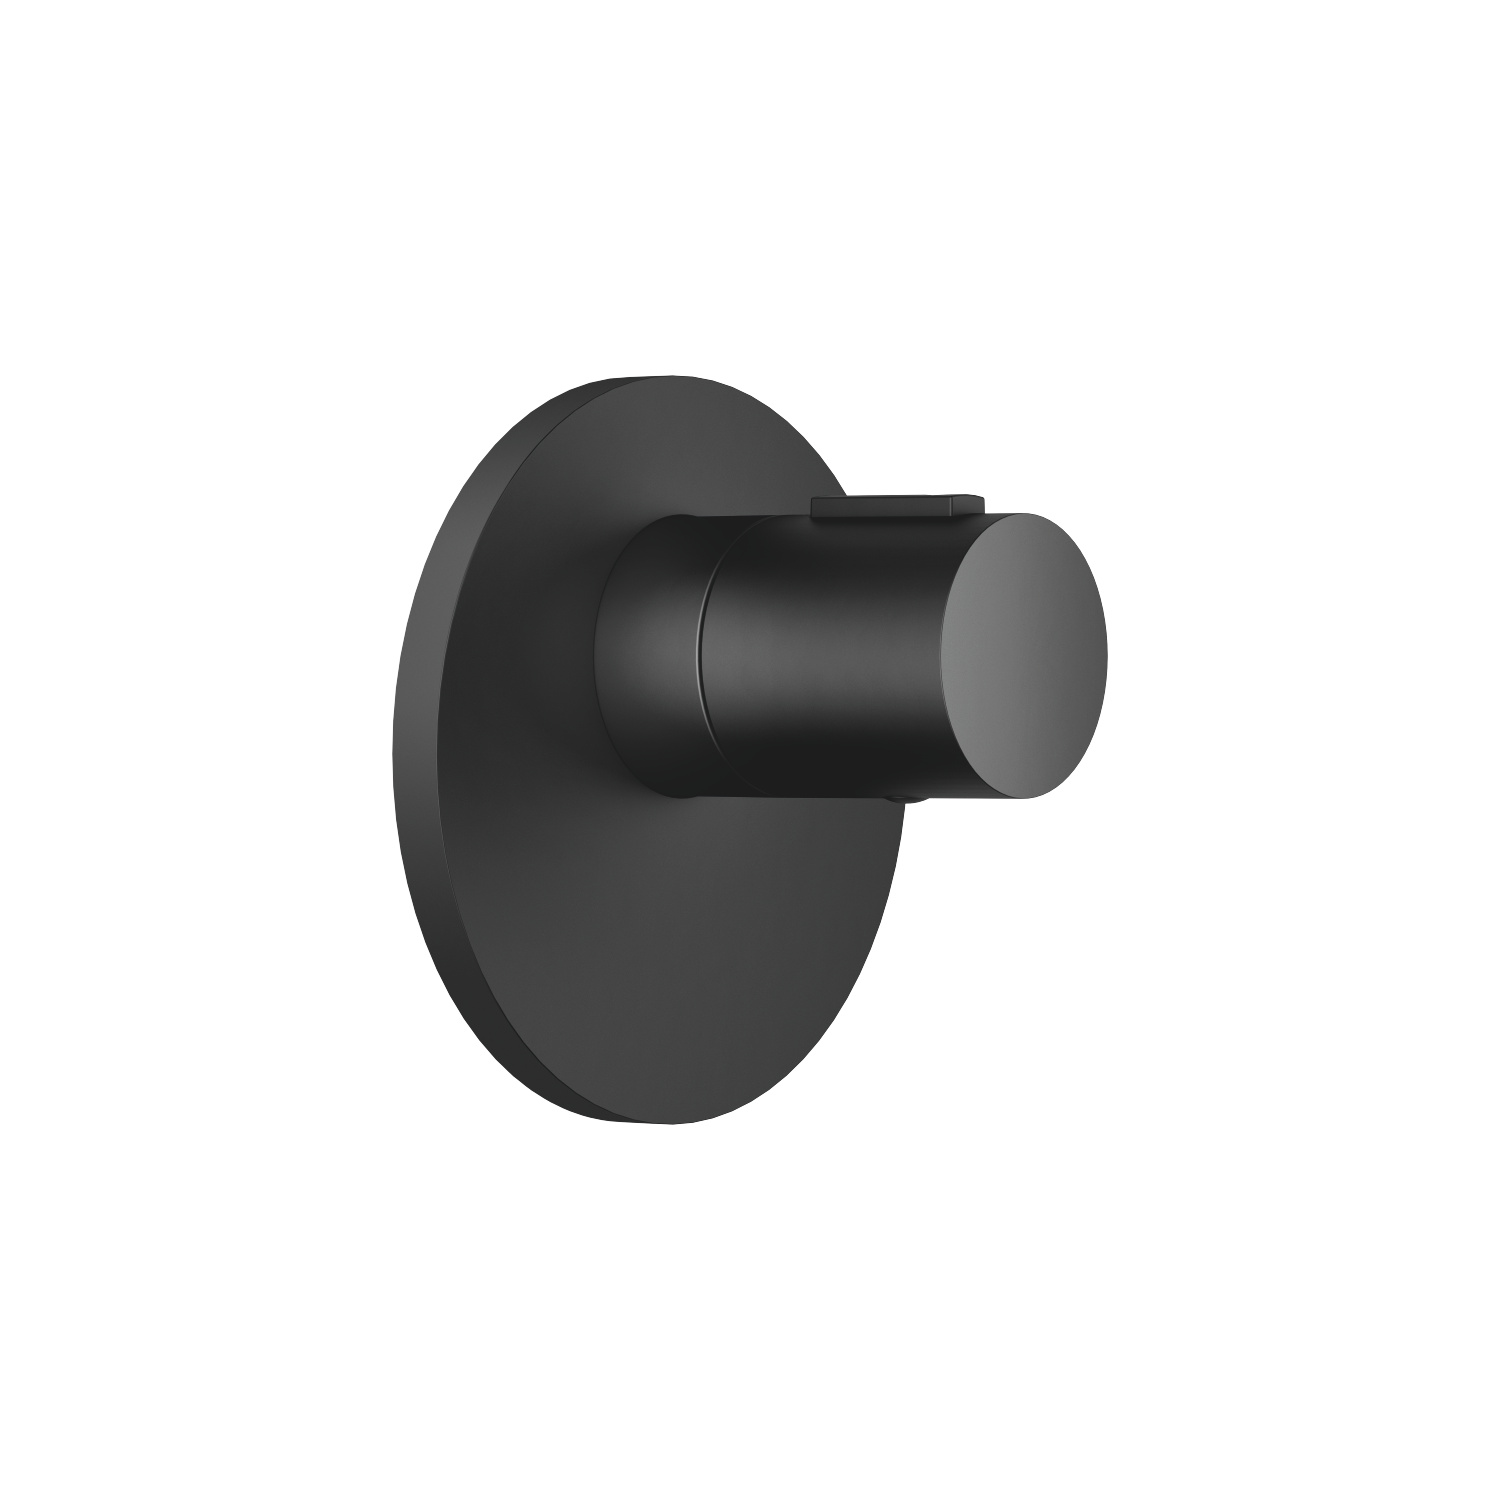 "xTOOL Concealed thermostat without volume control 1/2"" - matt black"